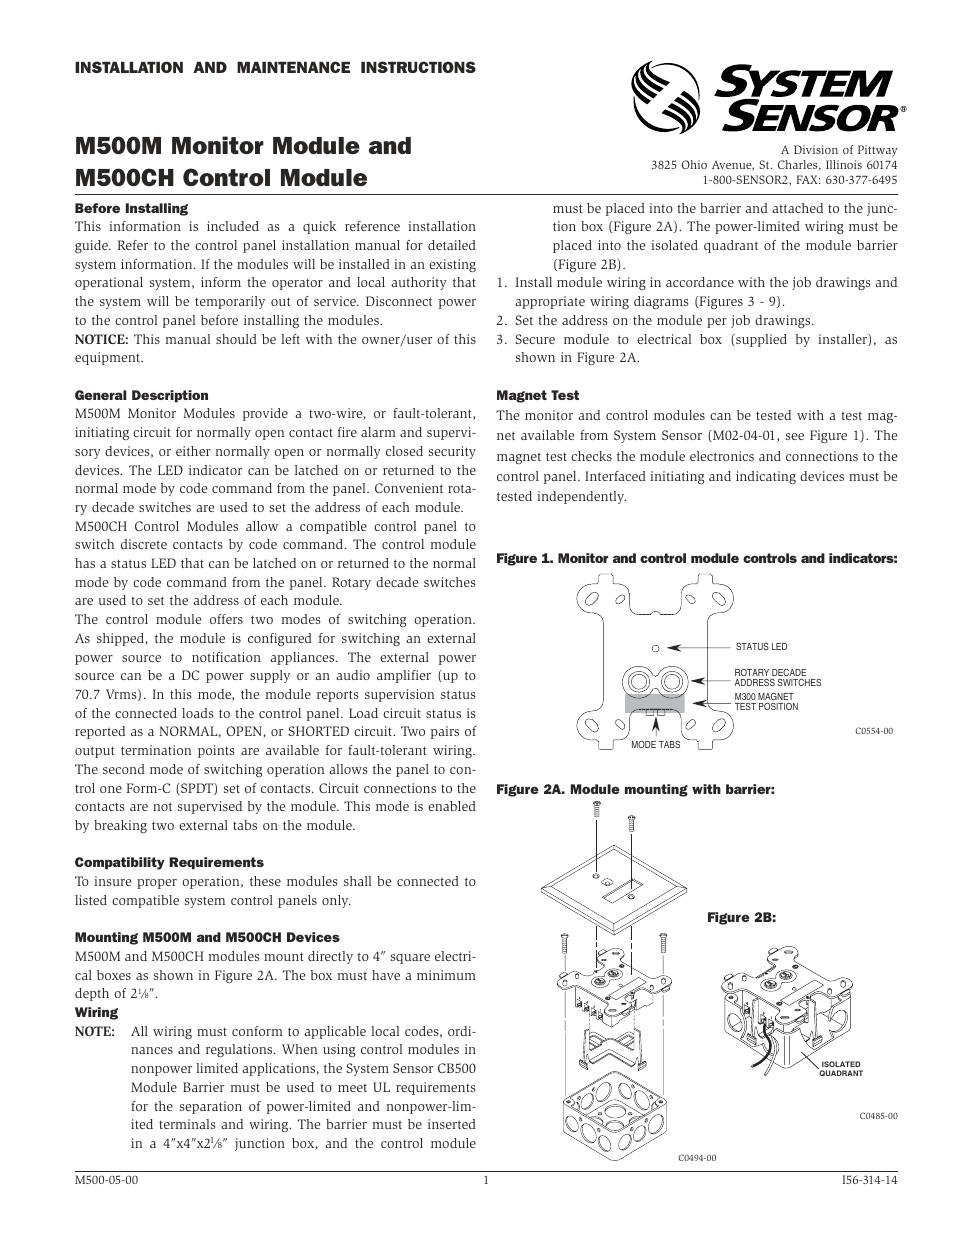 System Sensor M500ch User Manual